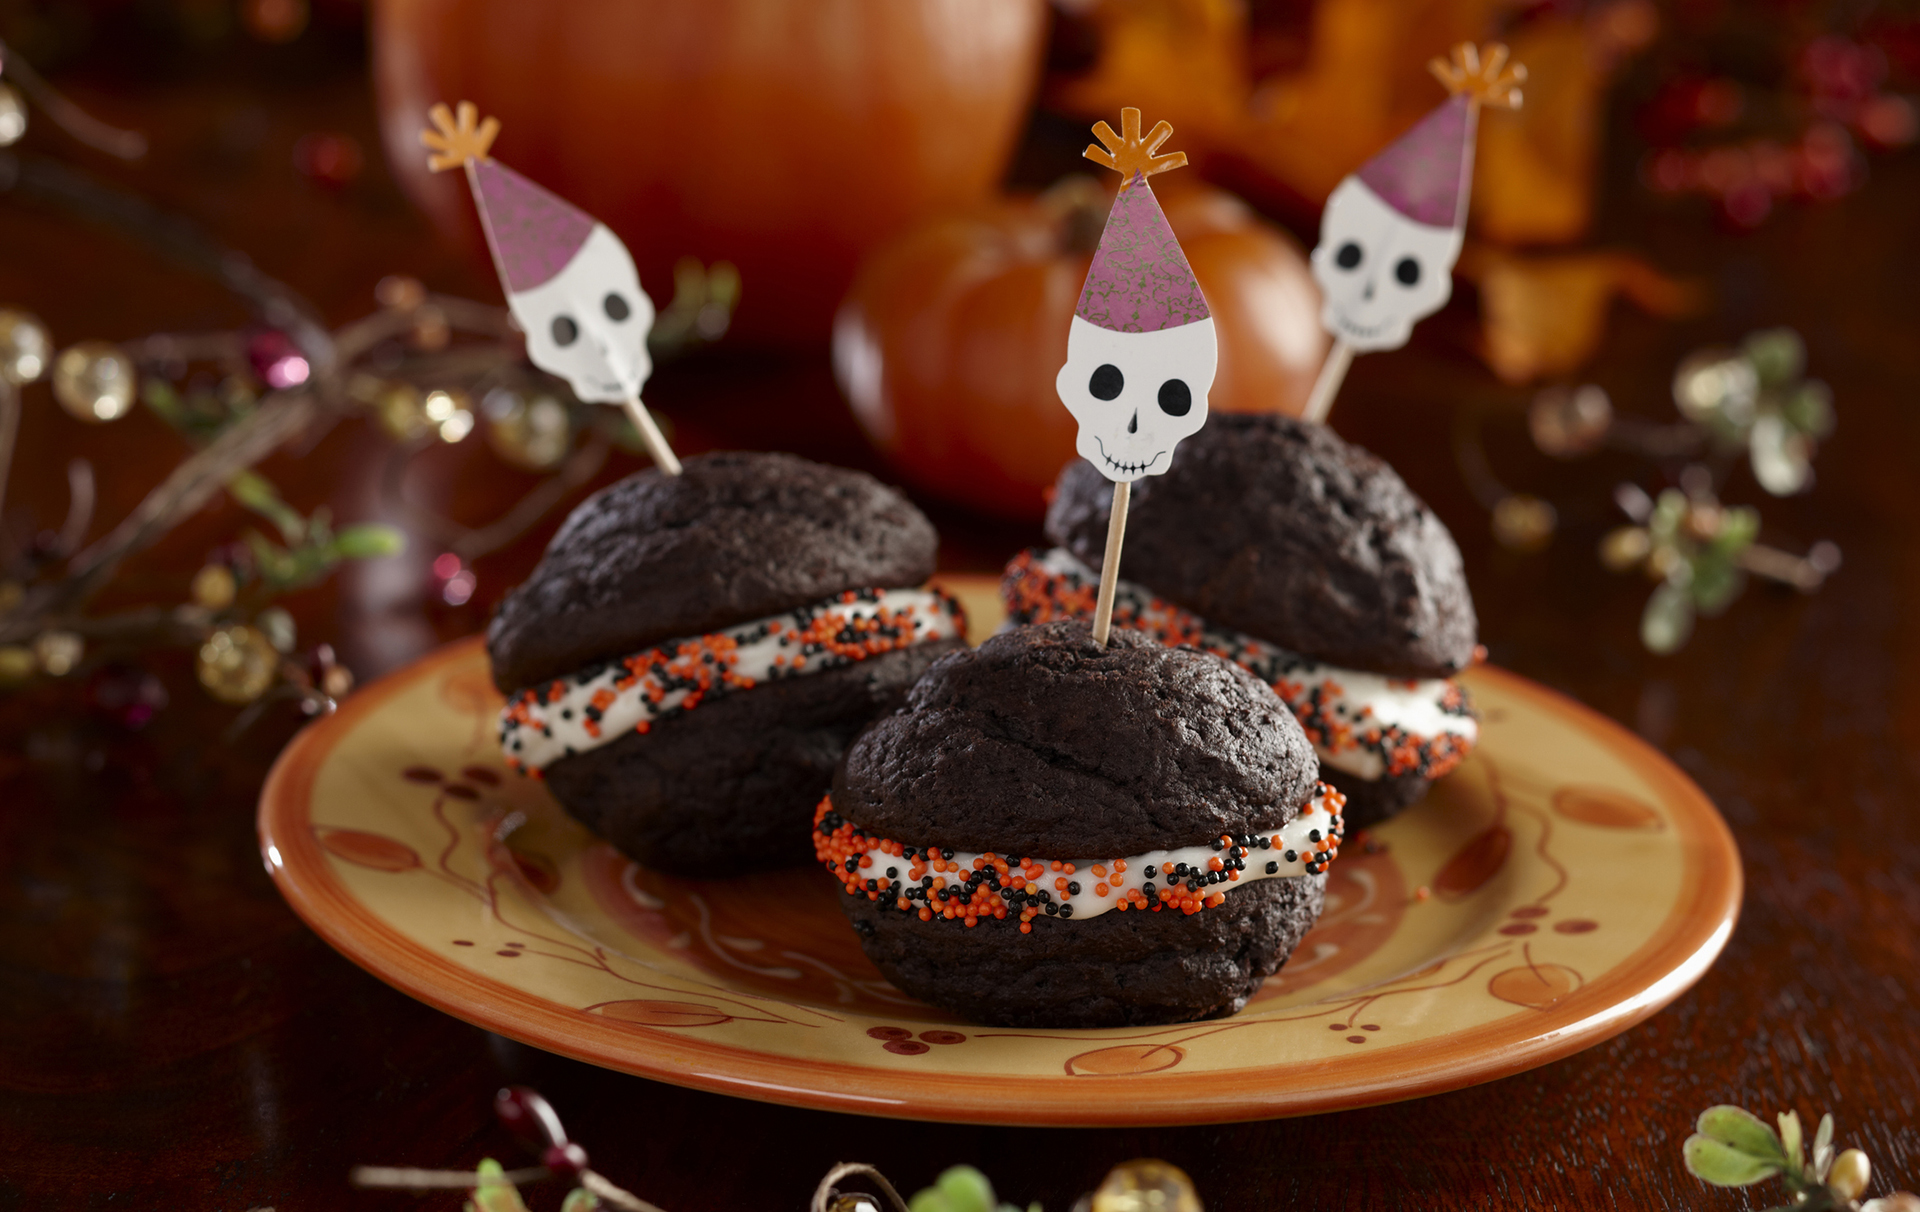 These delicious chocolate whoopie pies have been given a spooky twist for Halloween